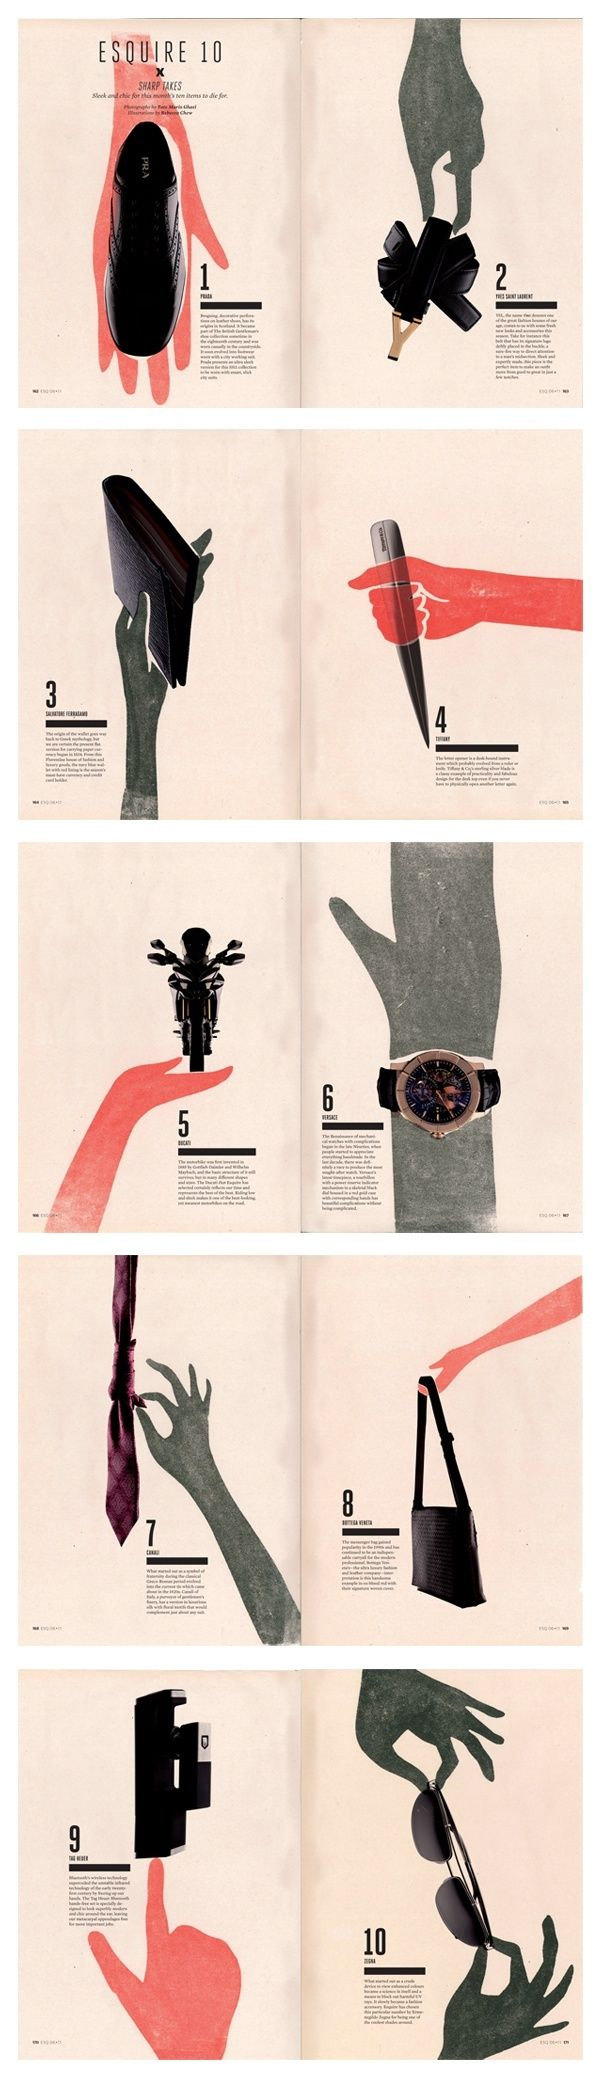 Module 5: Inspiring Catalog page Layout: The use of white space really makes the images stand off of the page with the contrasting hand in the image give it interest.  It is as if it is being handed to you.